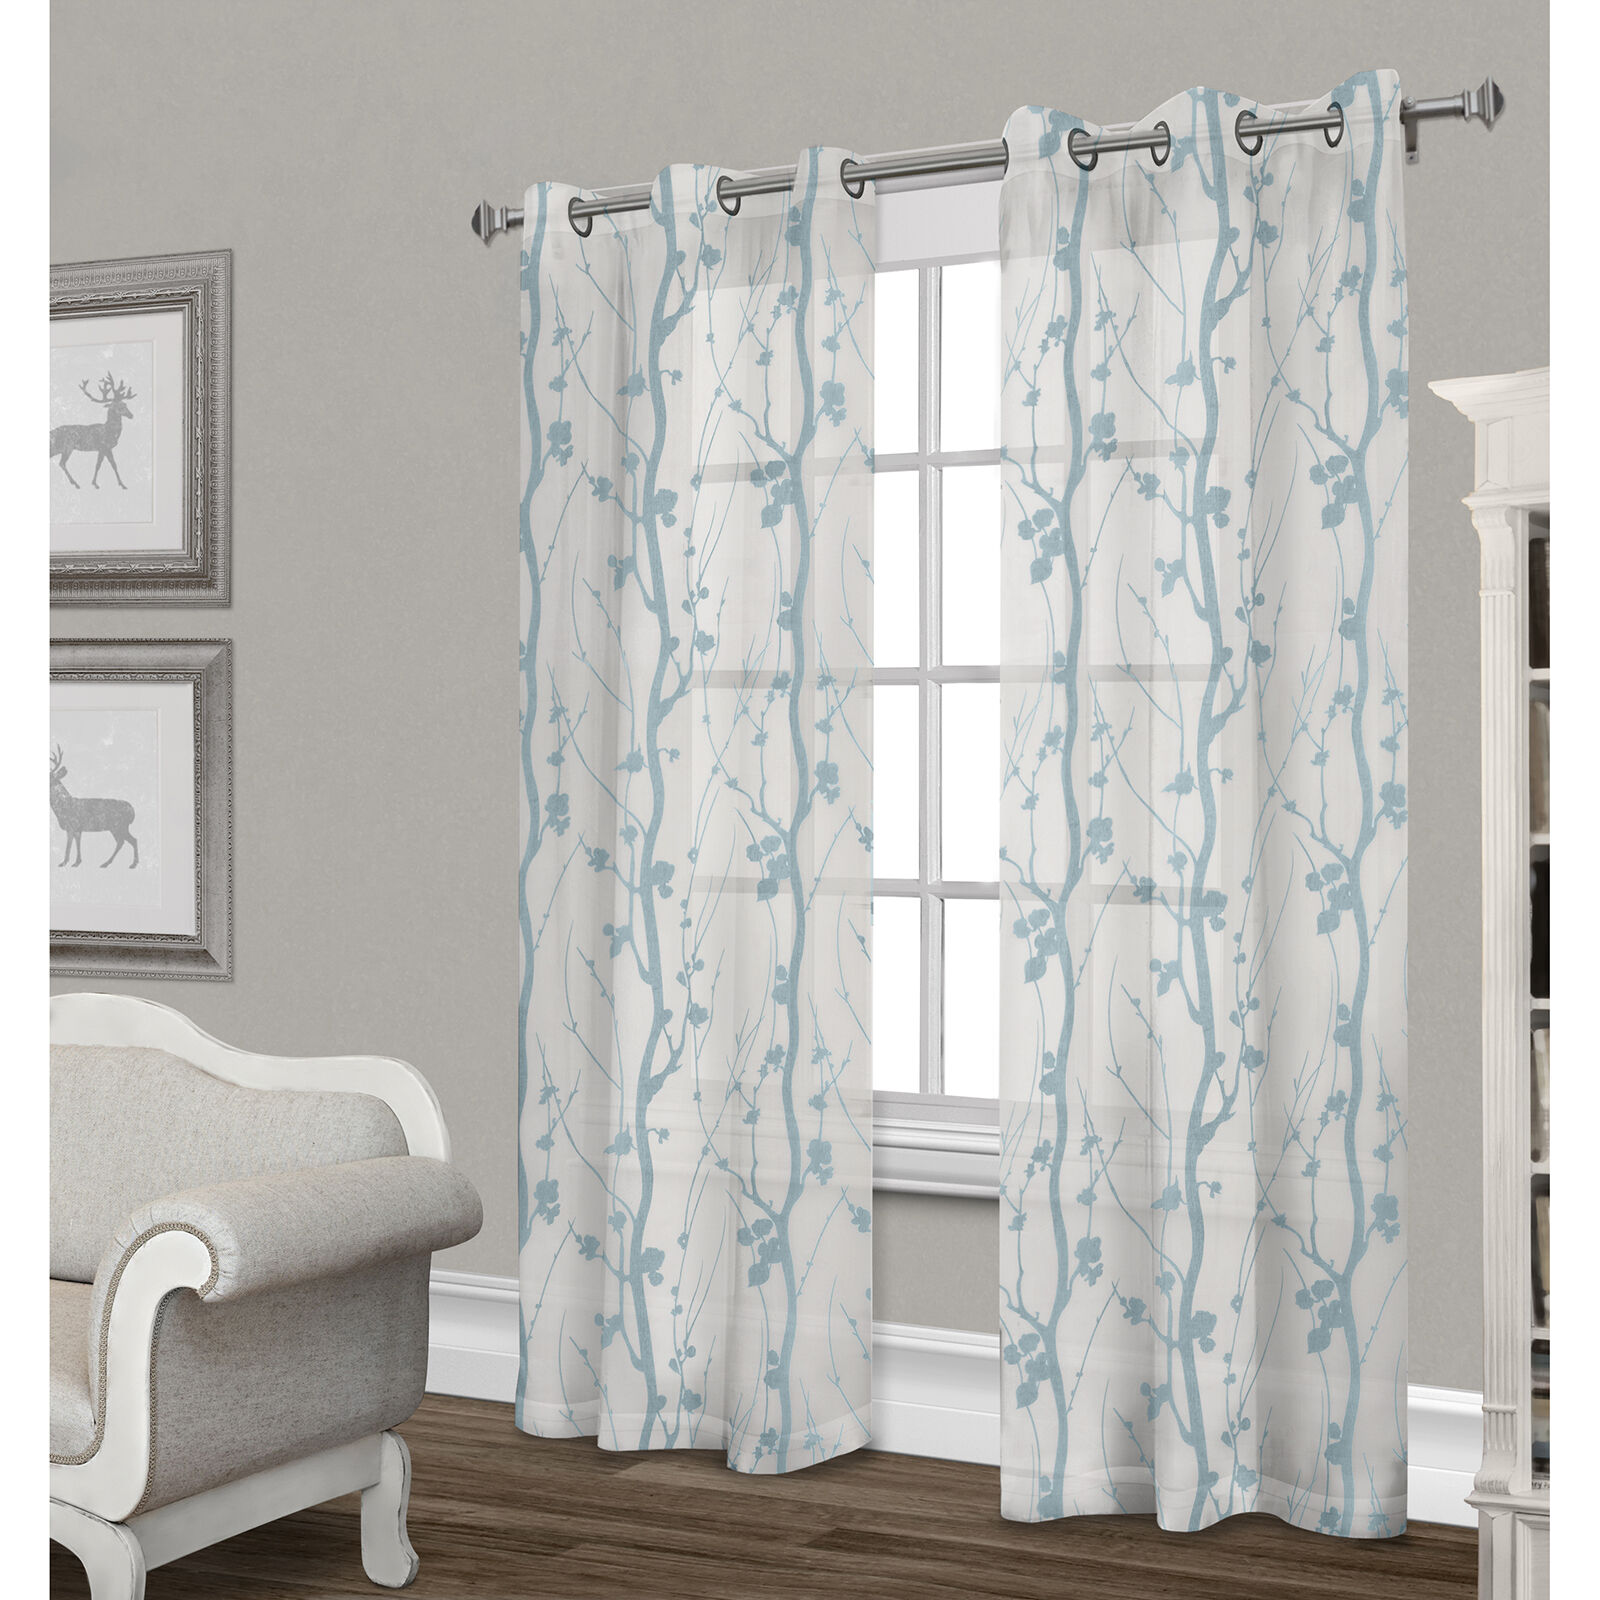 Corfu Sheer Curtain Panel White Amp Teal 84 In At Home